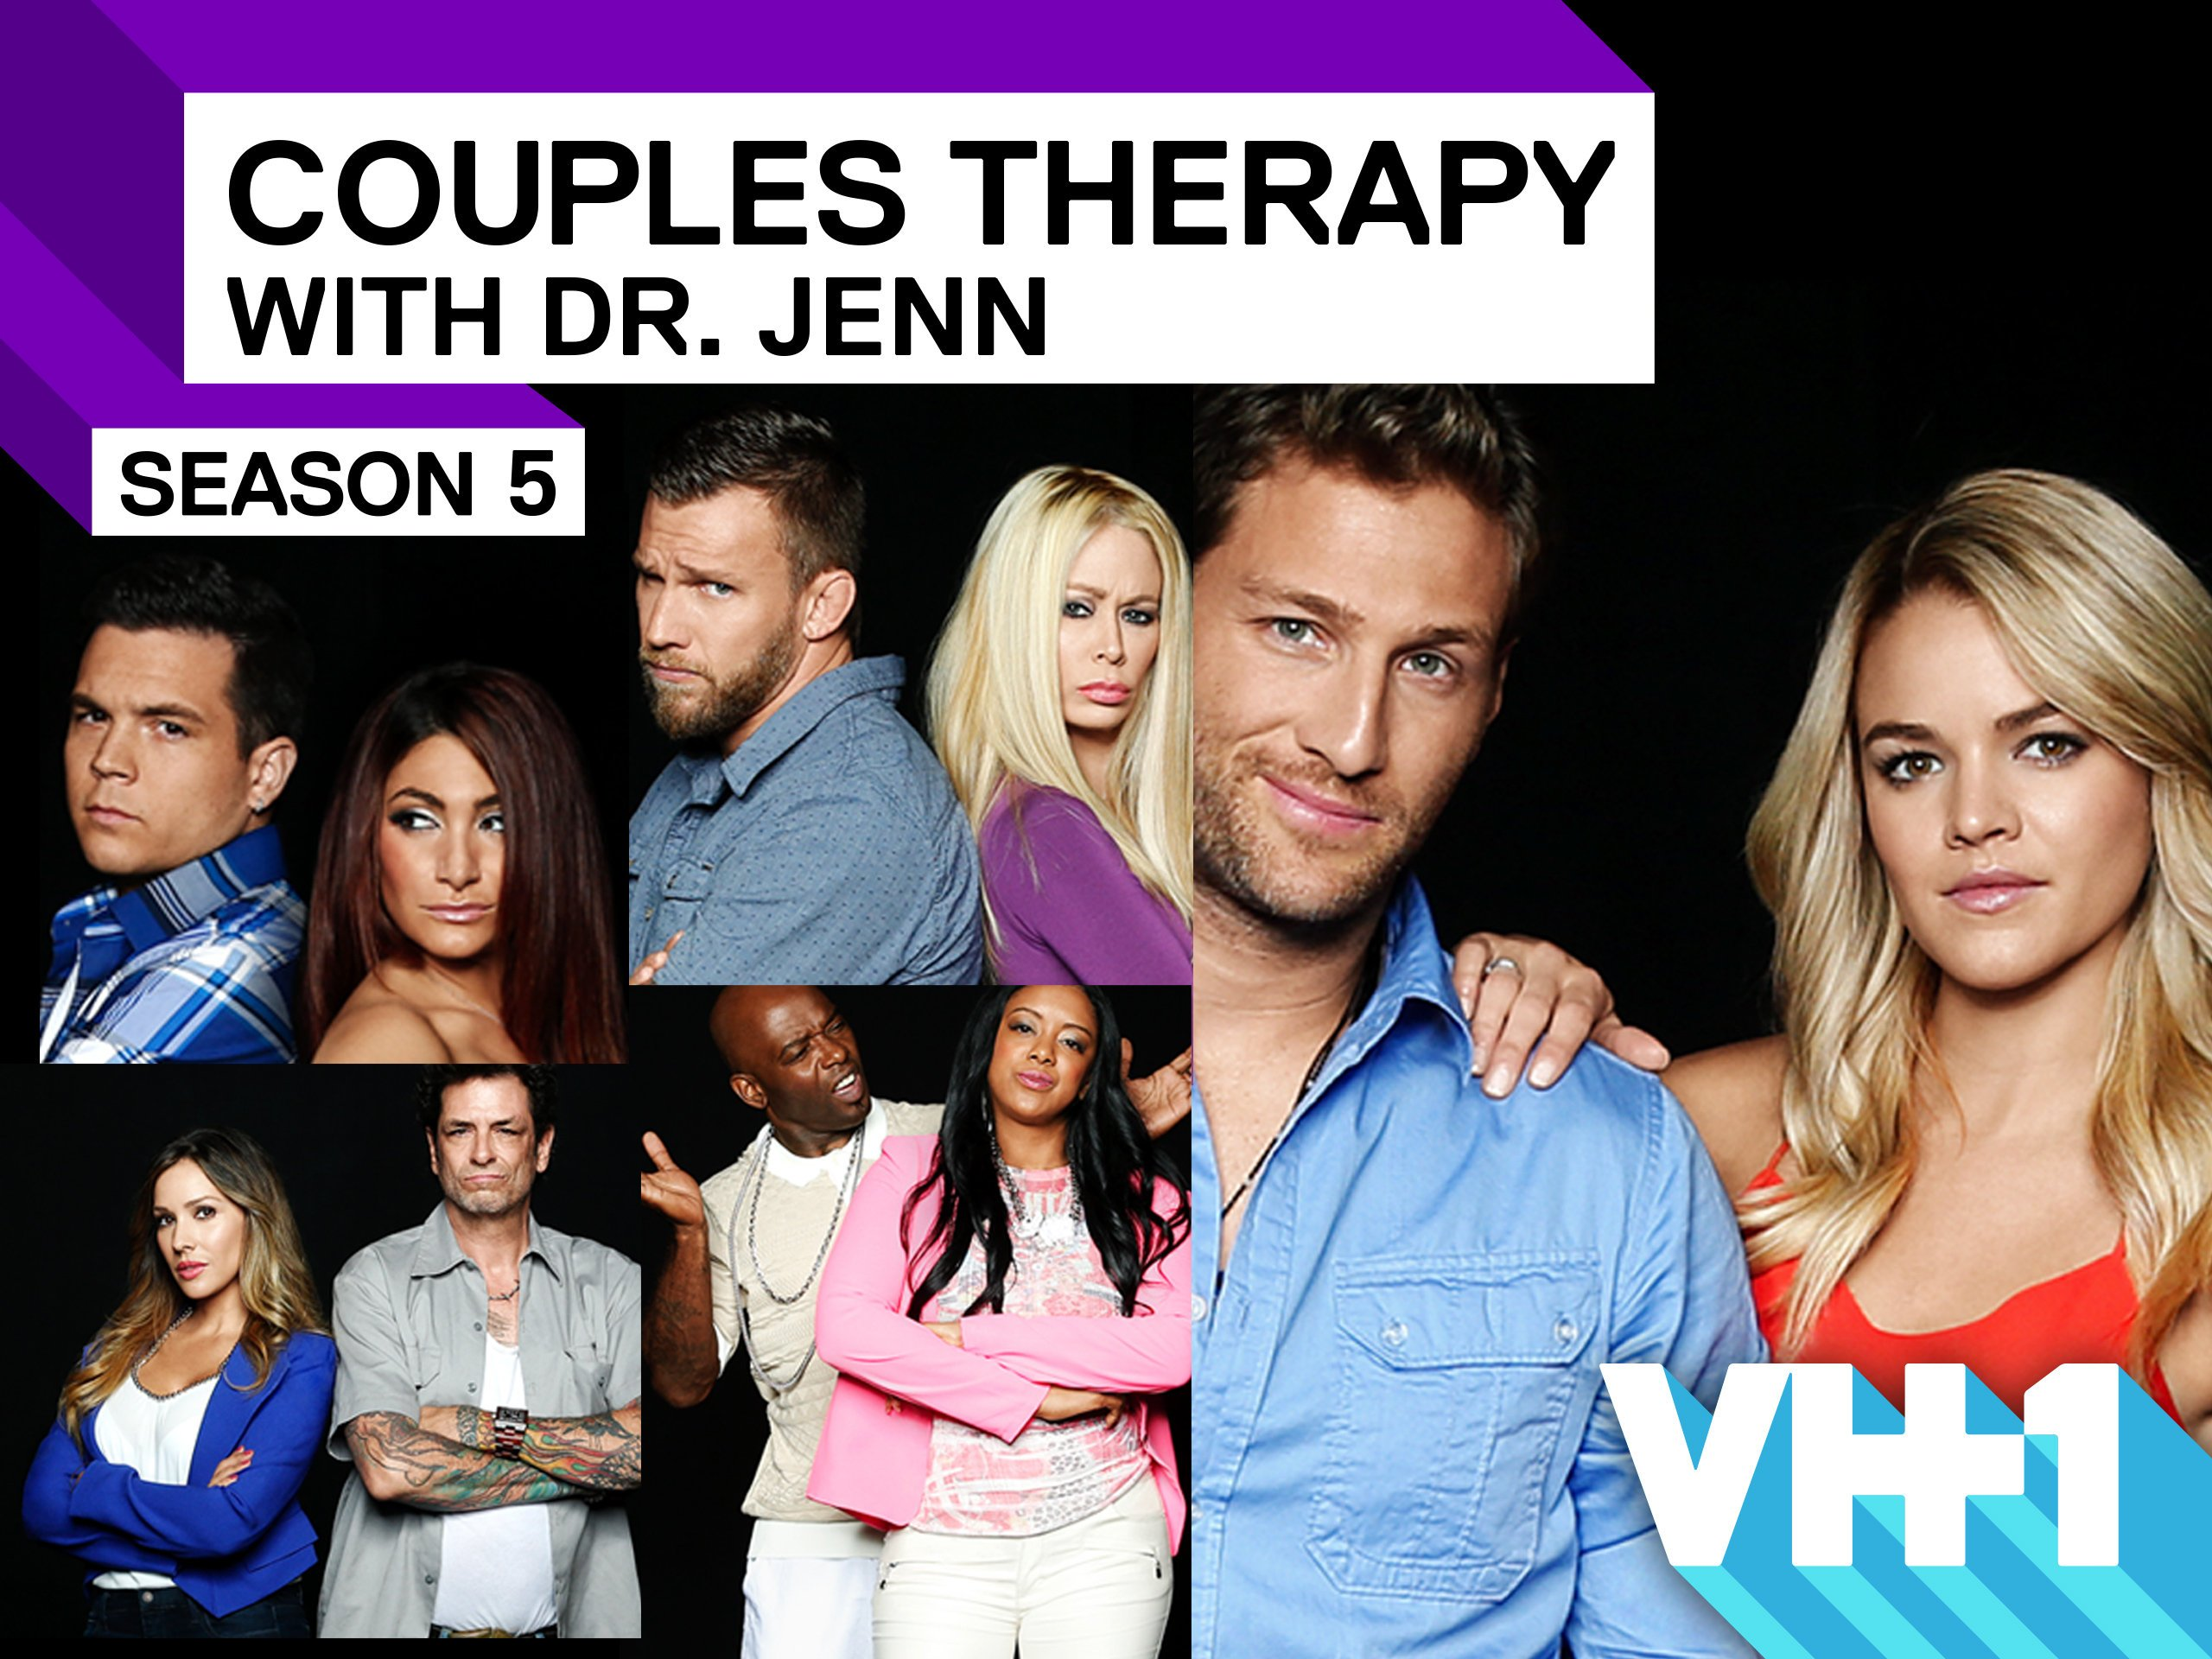 Couples therapy seasons